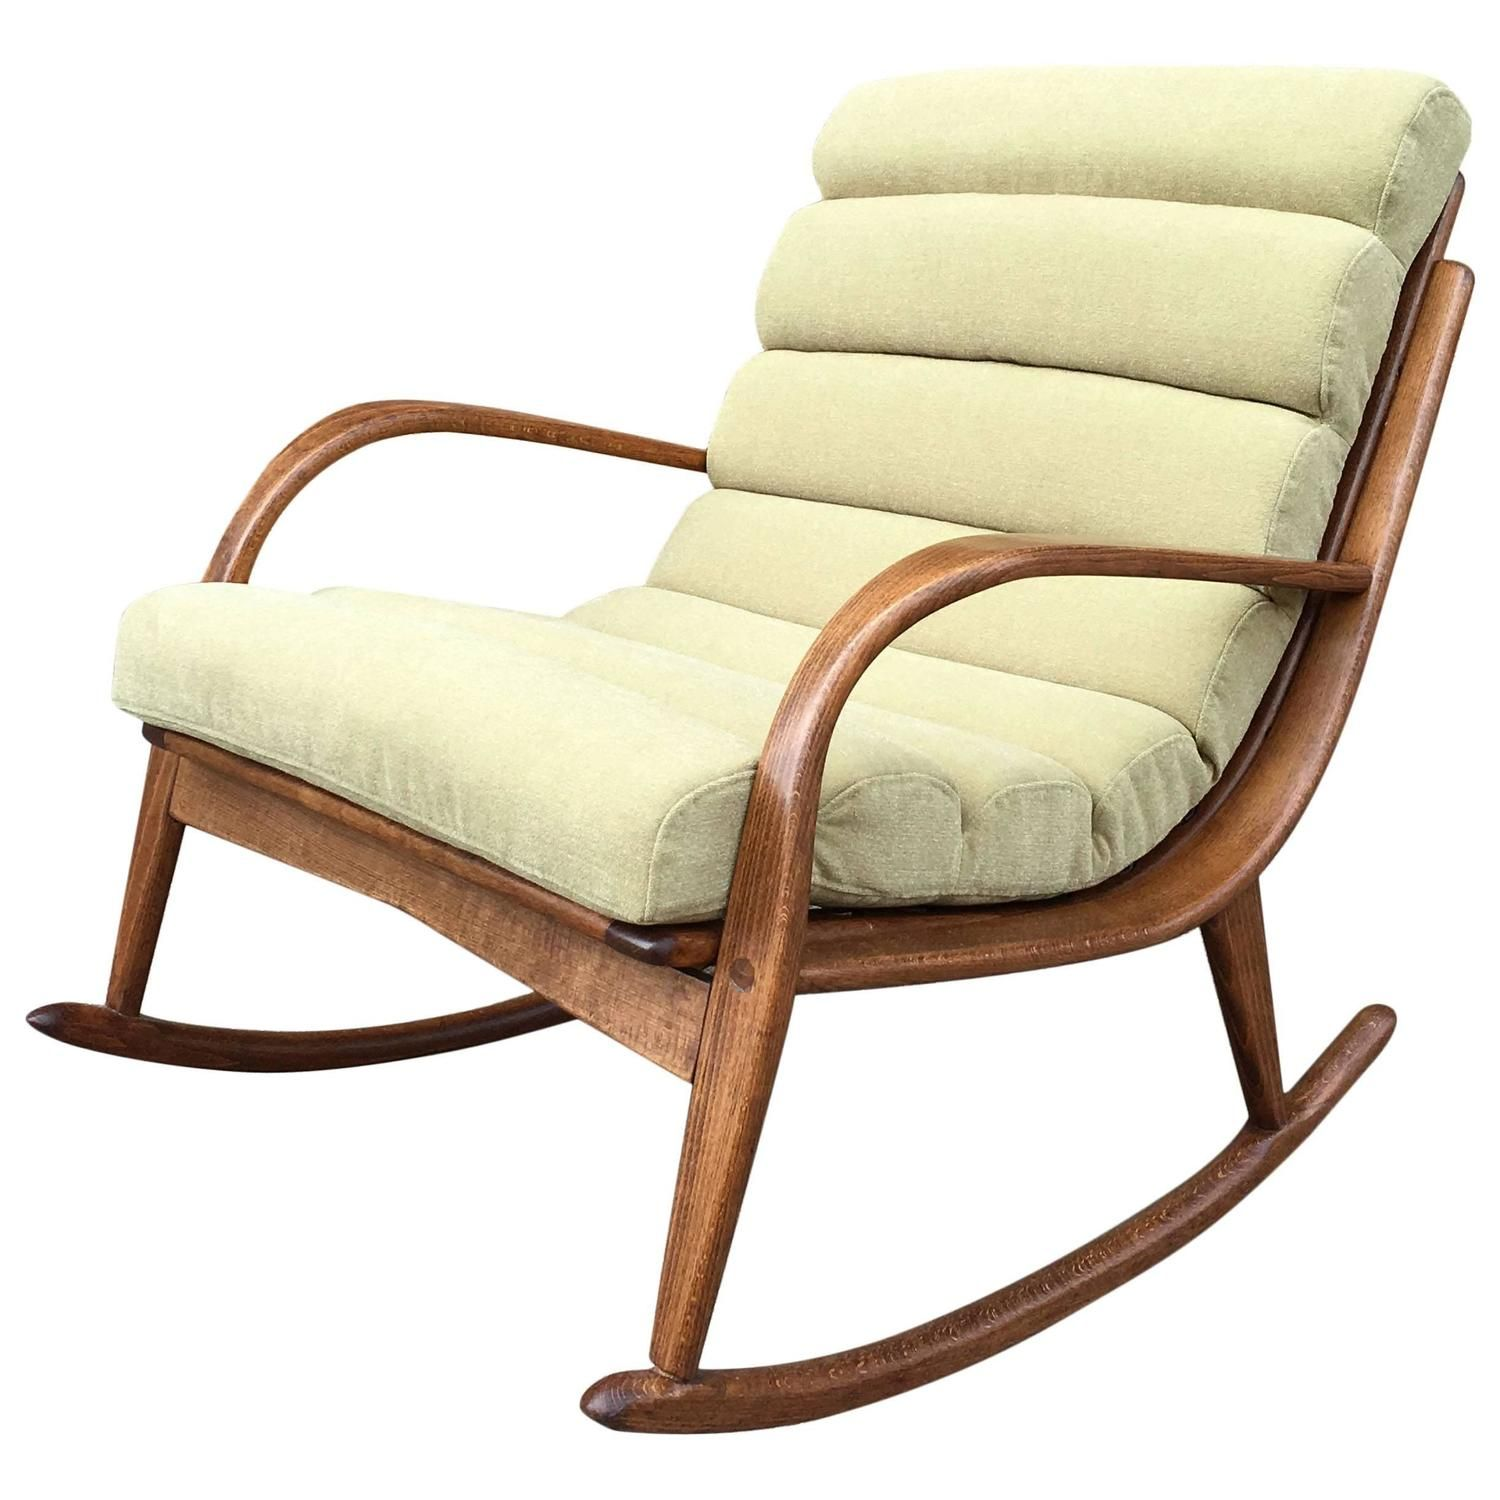 Upholstered rocking chairs extremely rare danish modern bentwood upholstered rocking chair